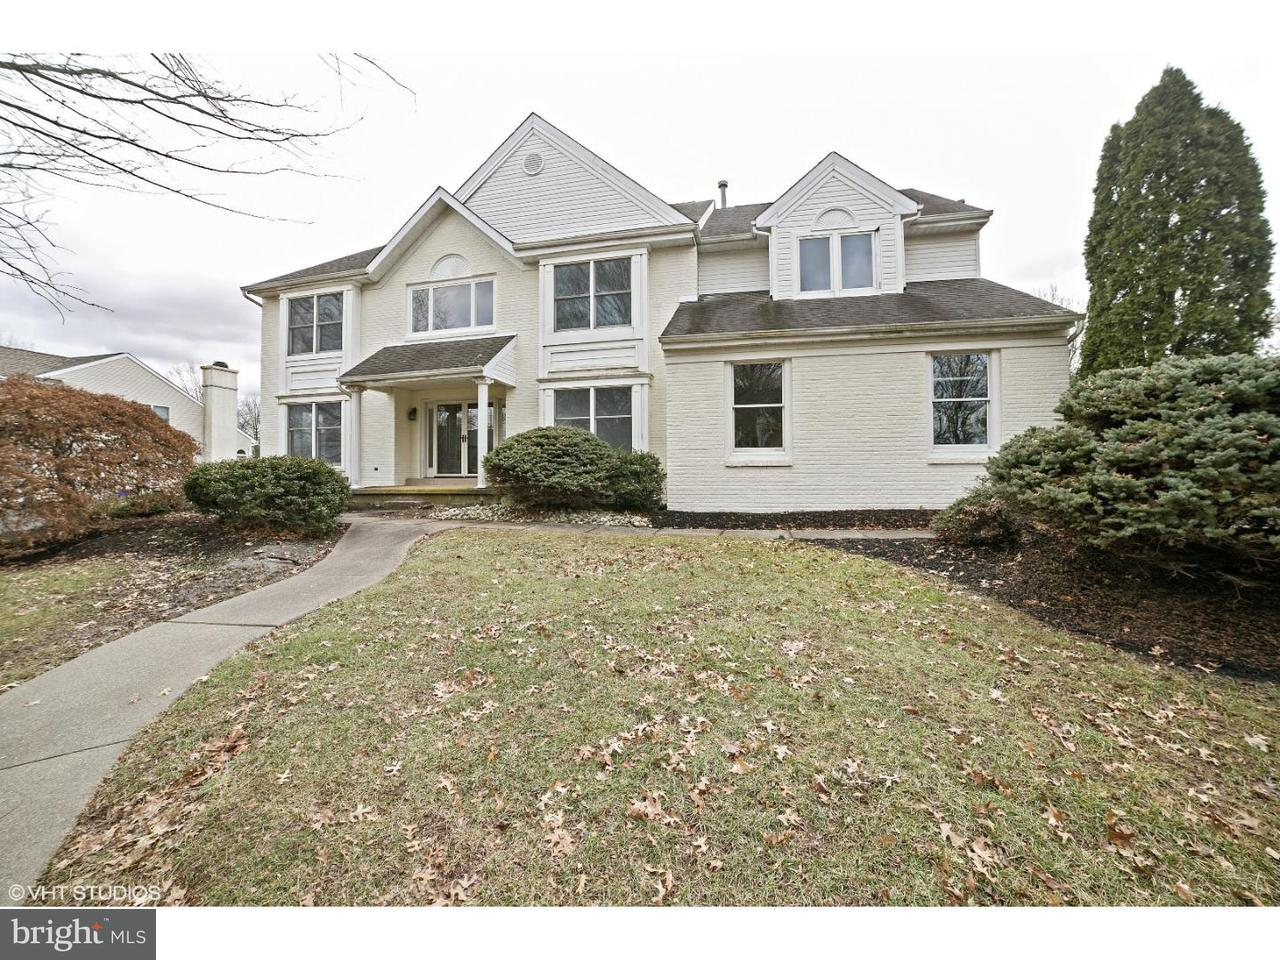 Single Family Home for Sale at 111 PONDEROSA Drive Holland, Pennsylvania 18966 United States